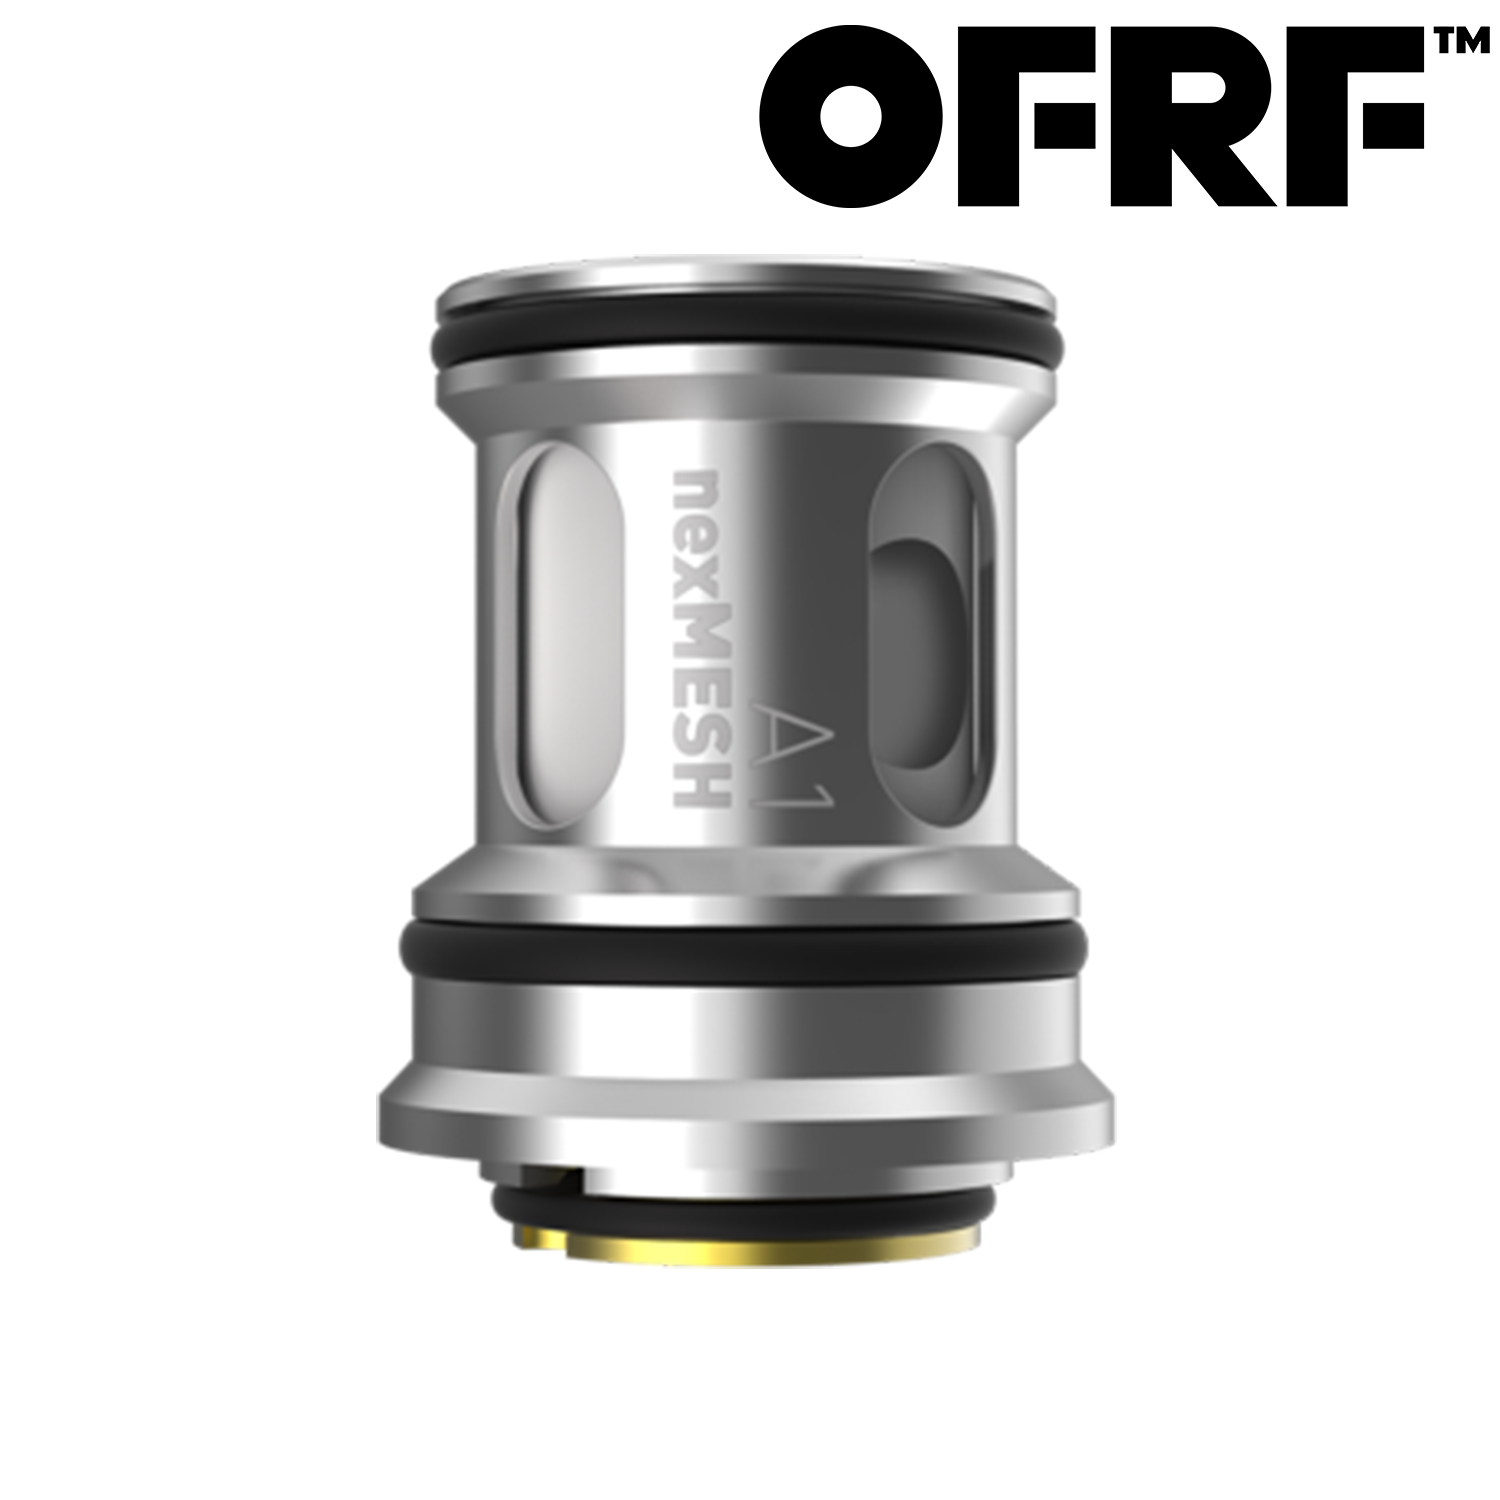 OFRF NEXMESH SUB-OHM REPLACEMENT COIL (PRICE PER COIL)